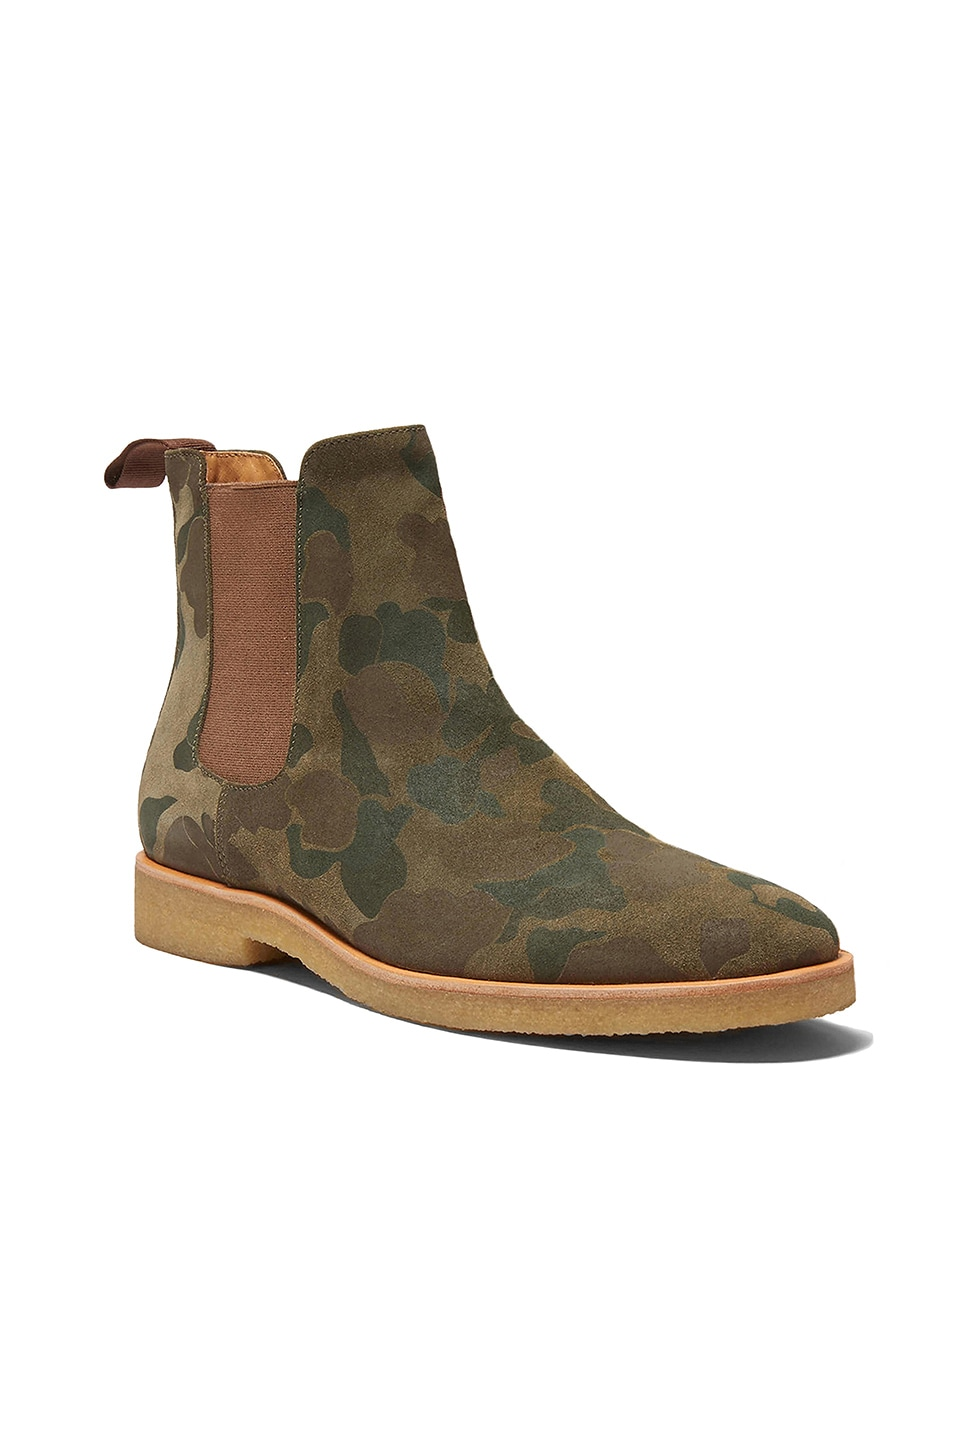 New Republic by Mark McNairy Houston Chelsea Boot in Camo